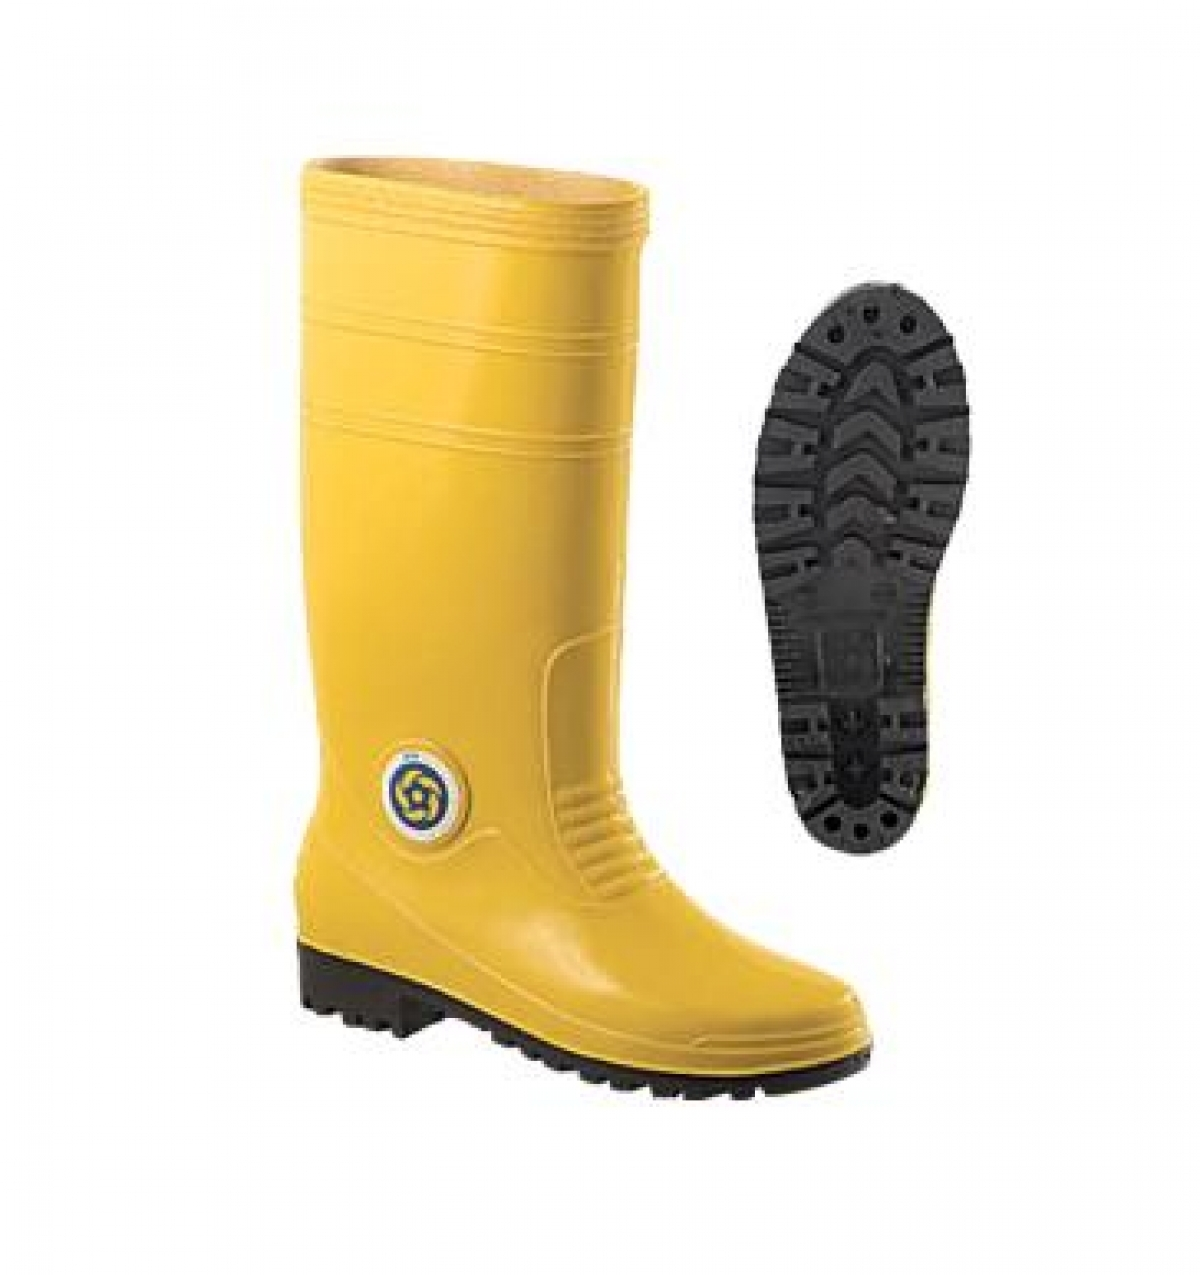 Korakoh Safety Wellington Rubber Boots My Power Tools